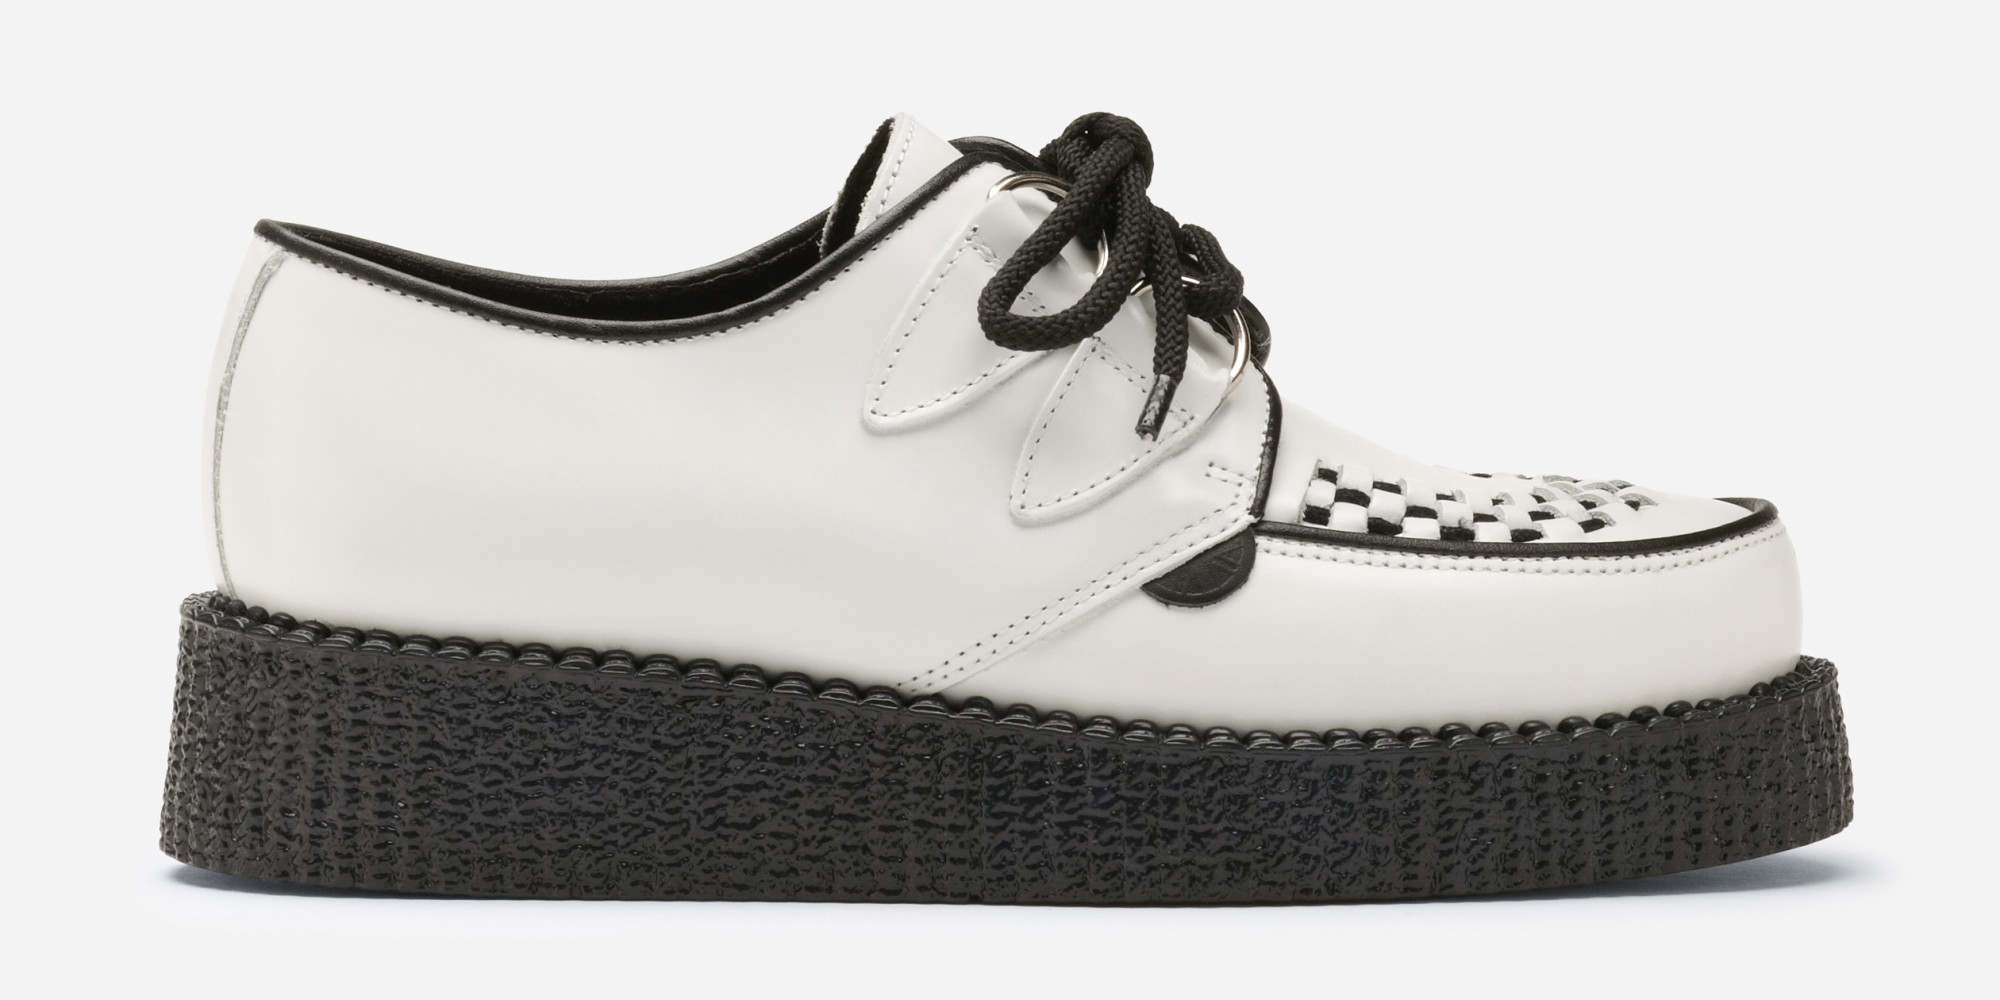 finest selection a17e5 6d289 Underground Leather Brothel Creepers | Single Sole Wulfrun Creepers White  Leather | Shoes,Creepers,Underground,England